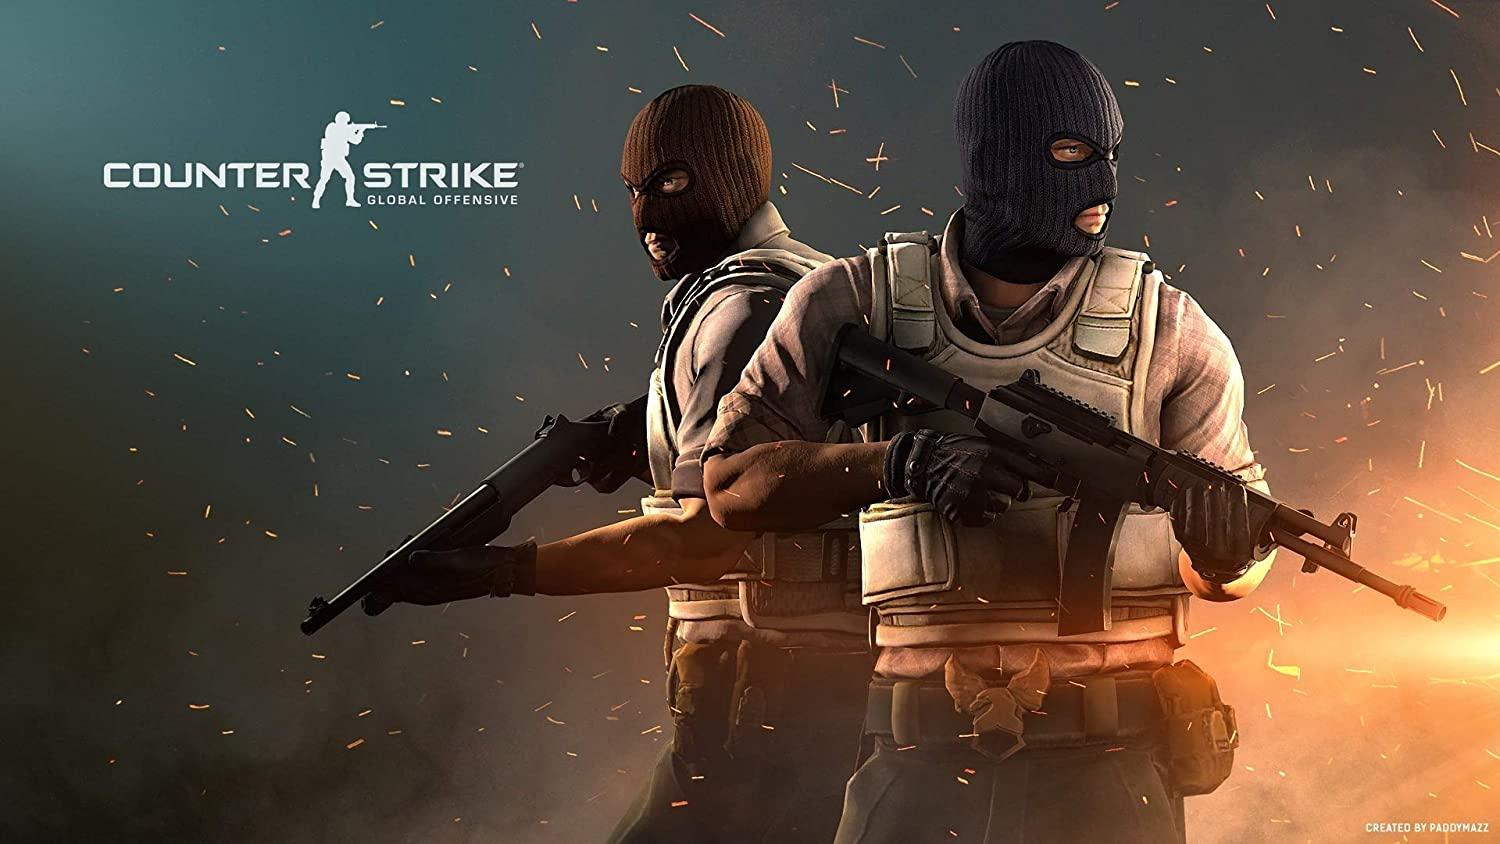 Counter Strike Global Offensive PC Download free full game for windows